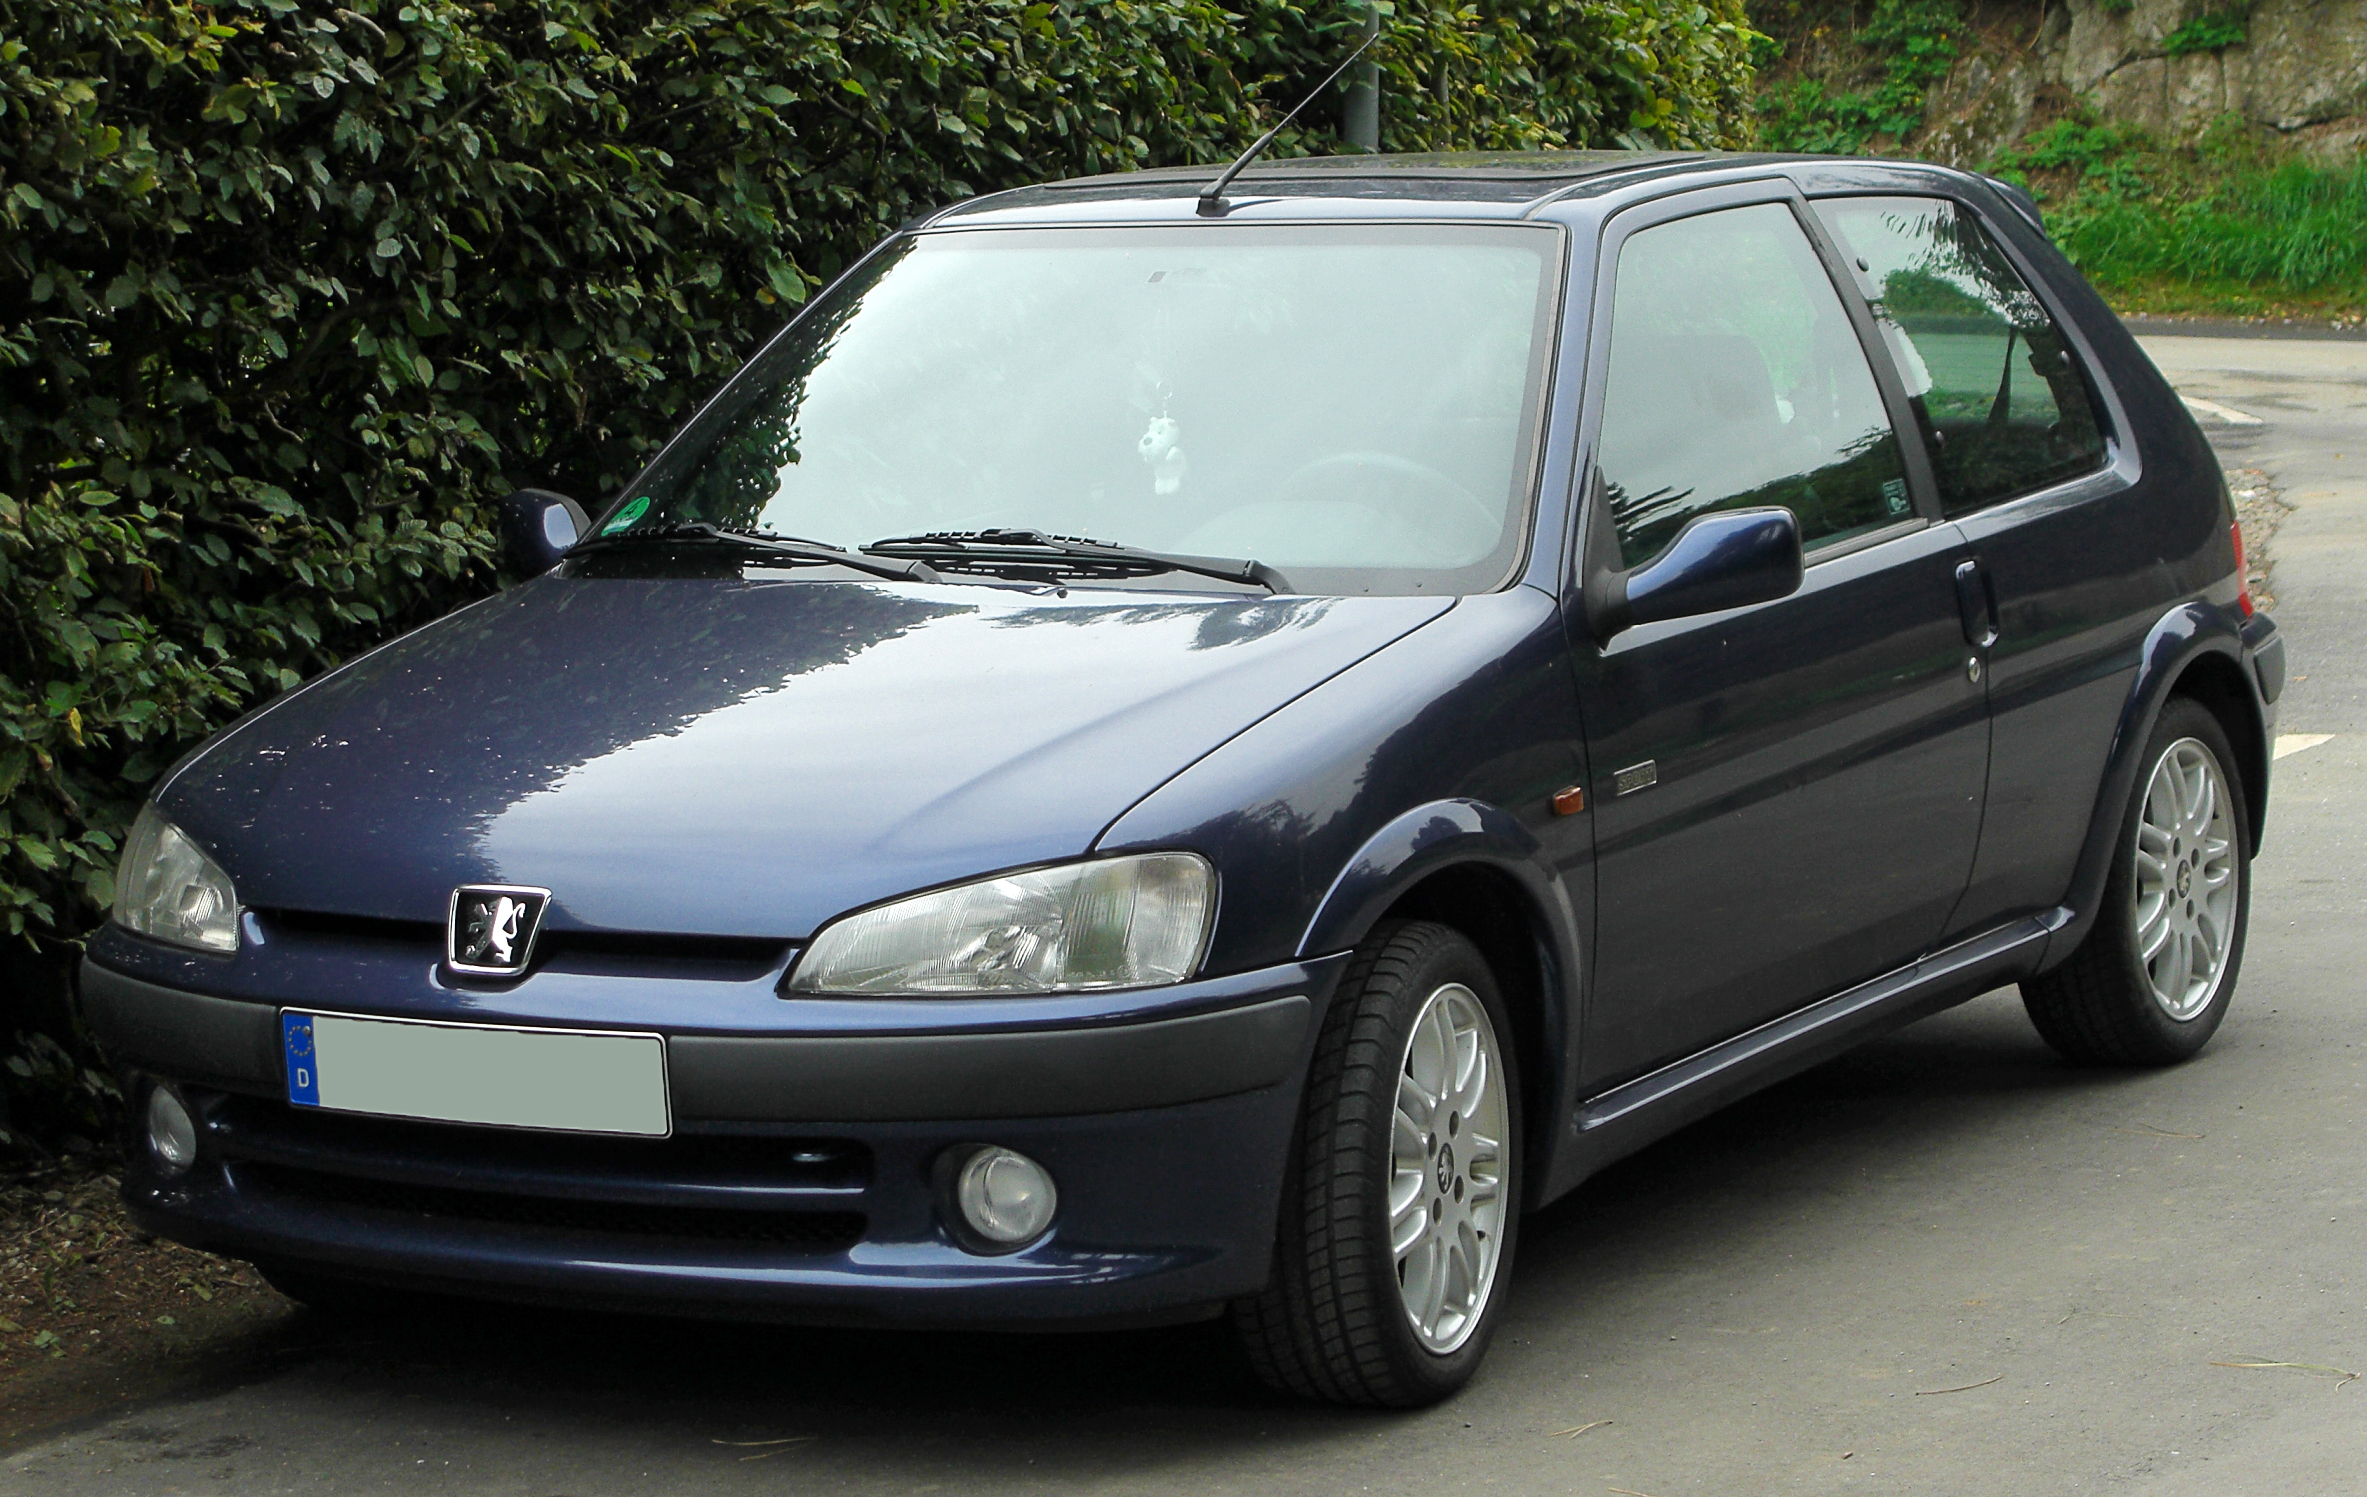 file peugeot 106 sport facelift front wikimedia commons. Black Bedroom Furniture Sets. Home Design Ideas